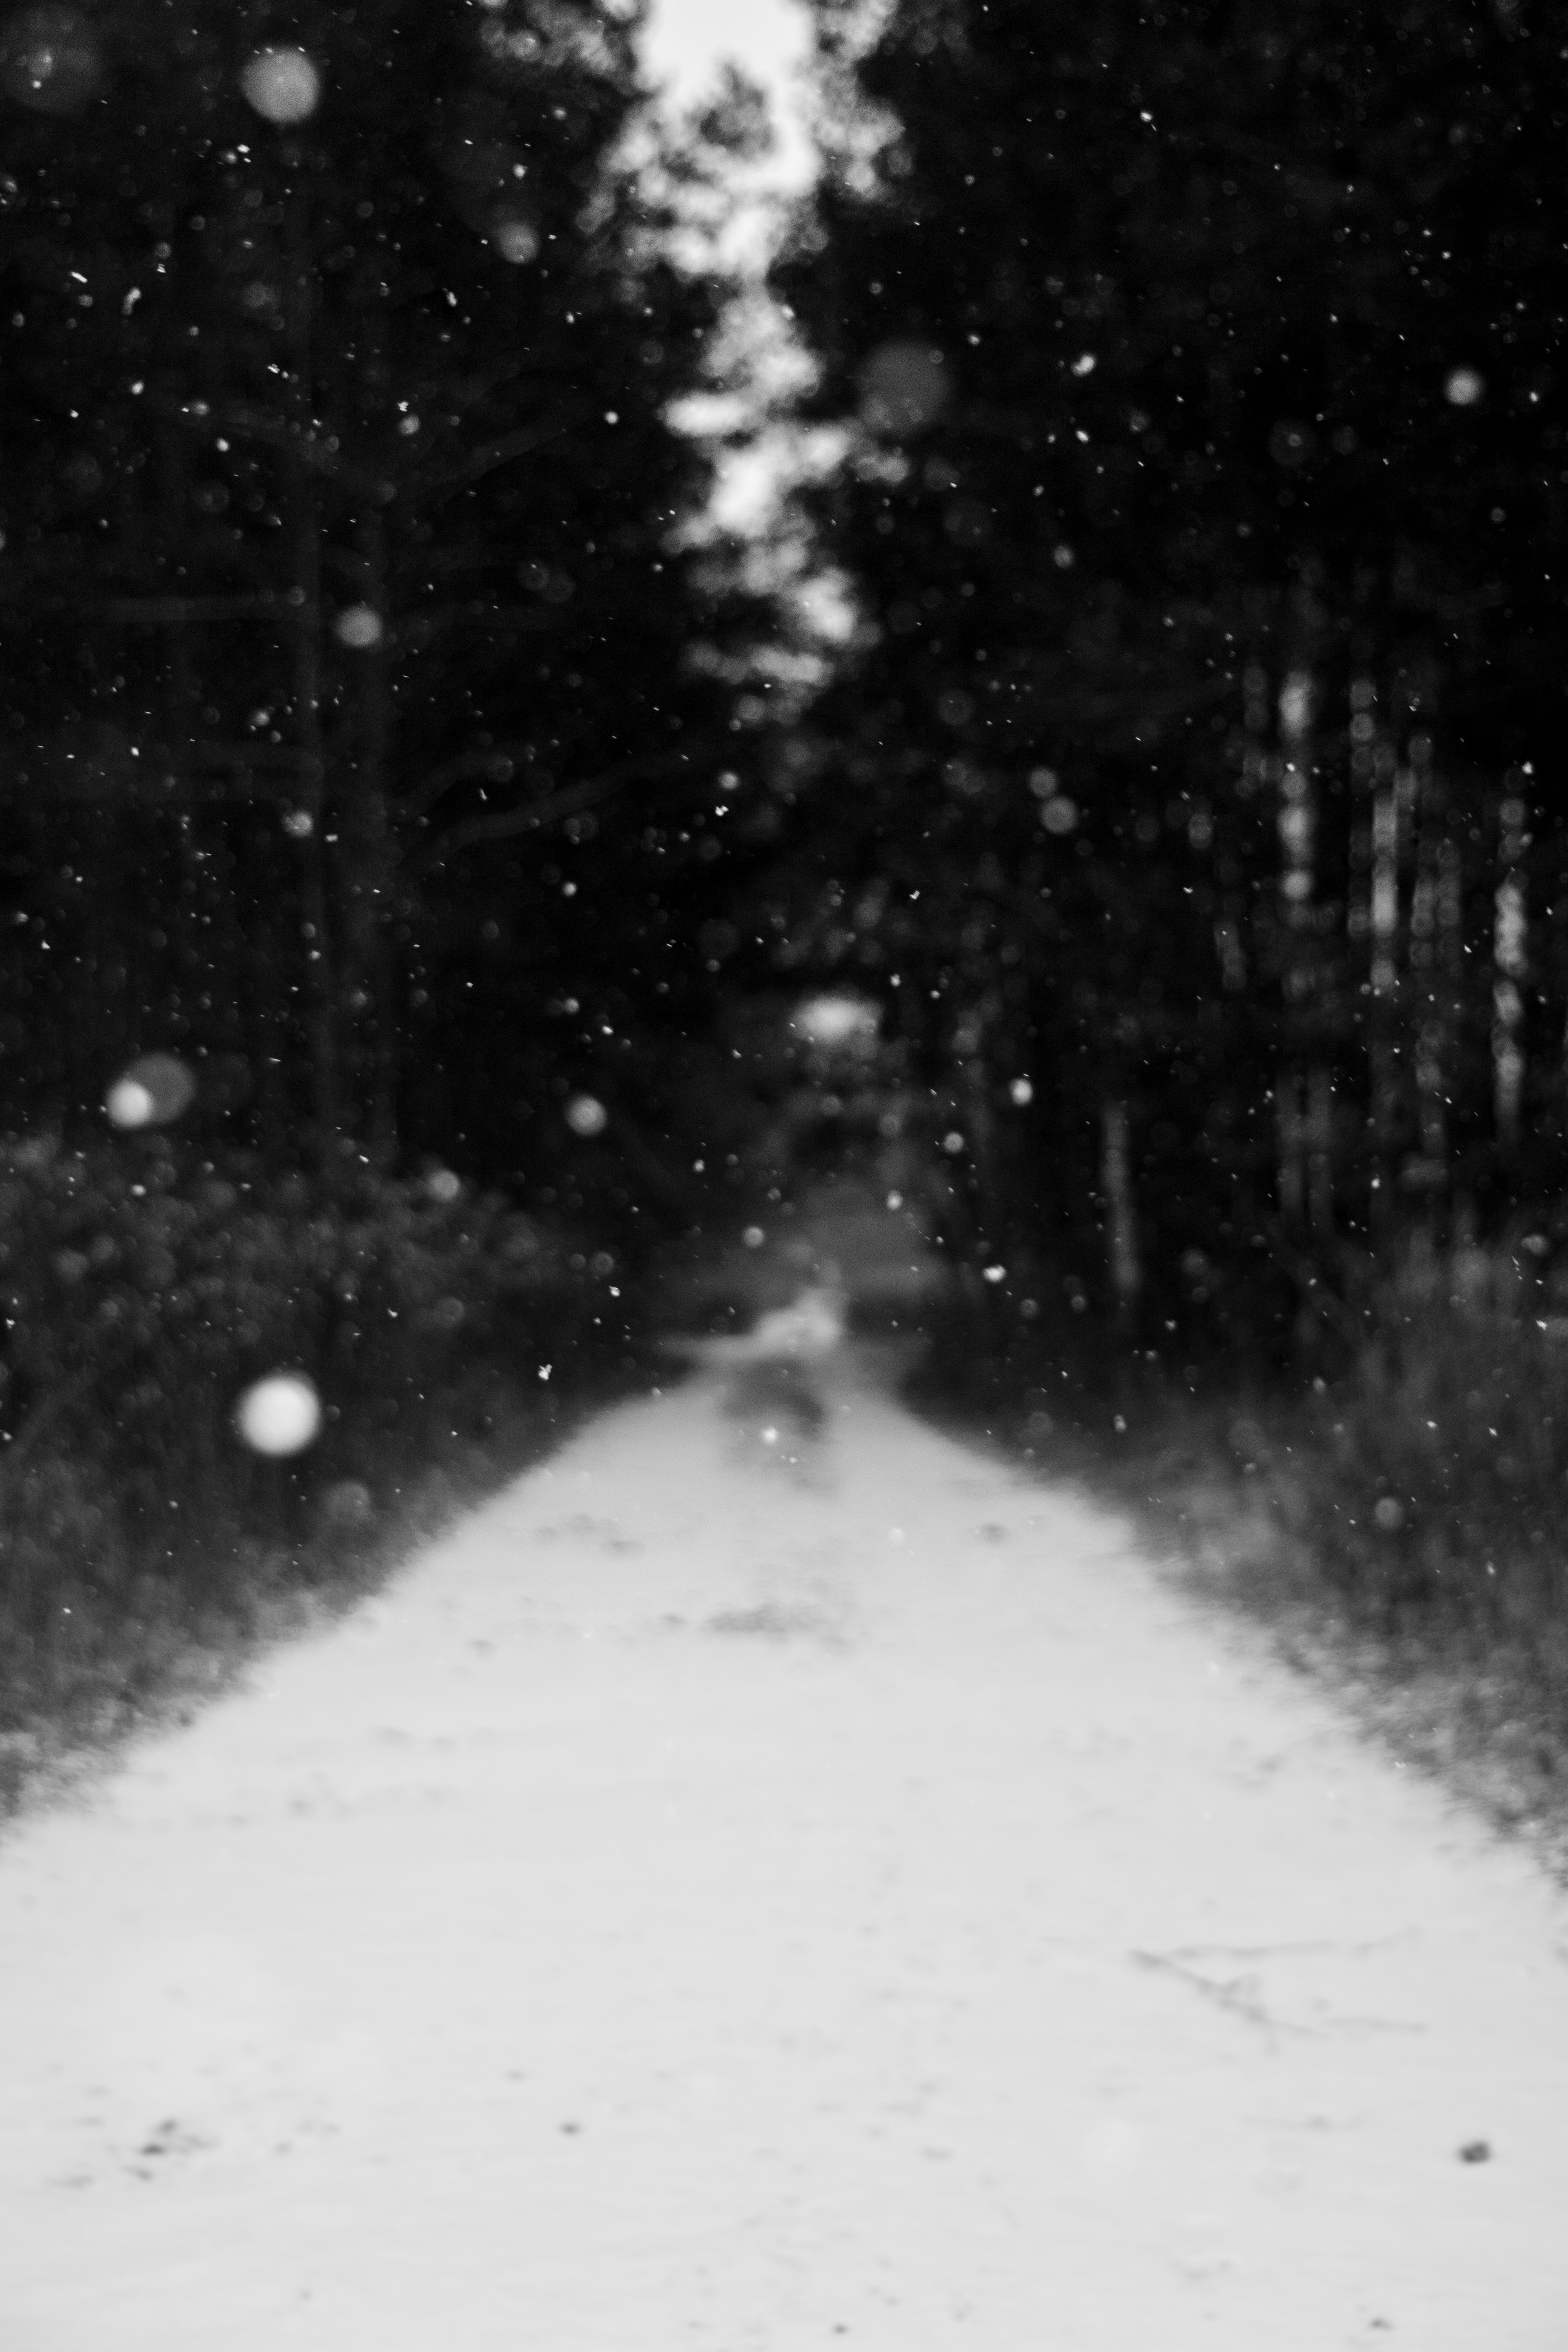 grayscale photo of snow falling